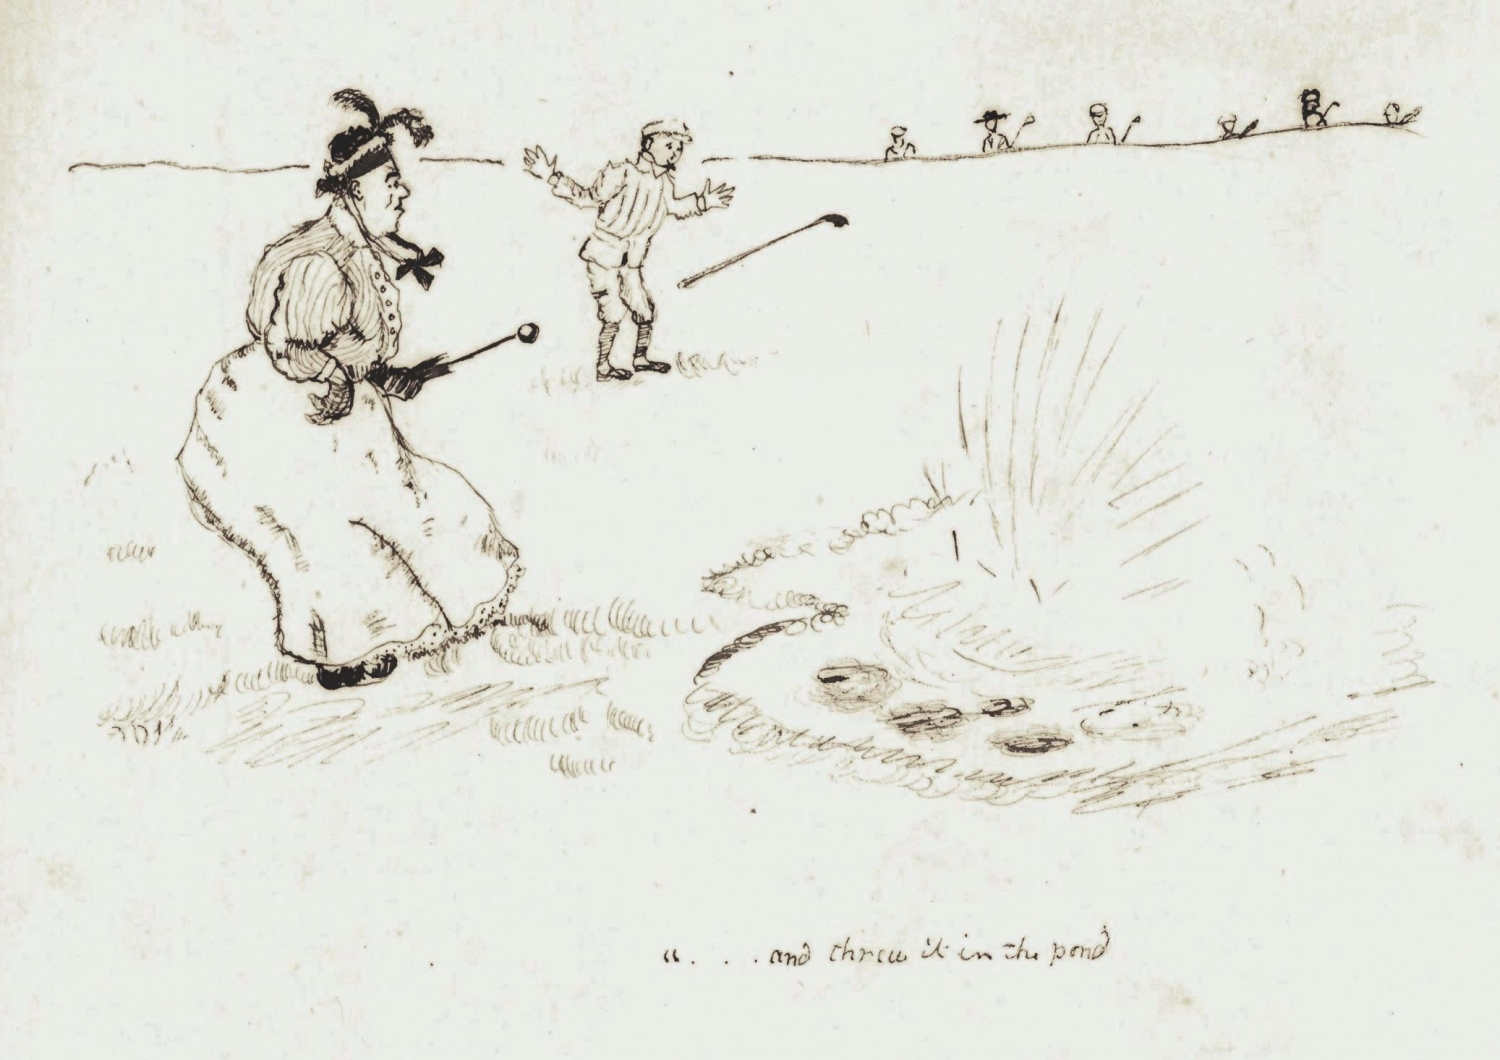 Sketch of golfers looking into pond.